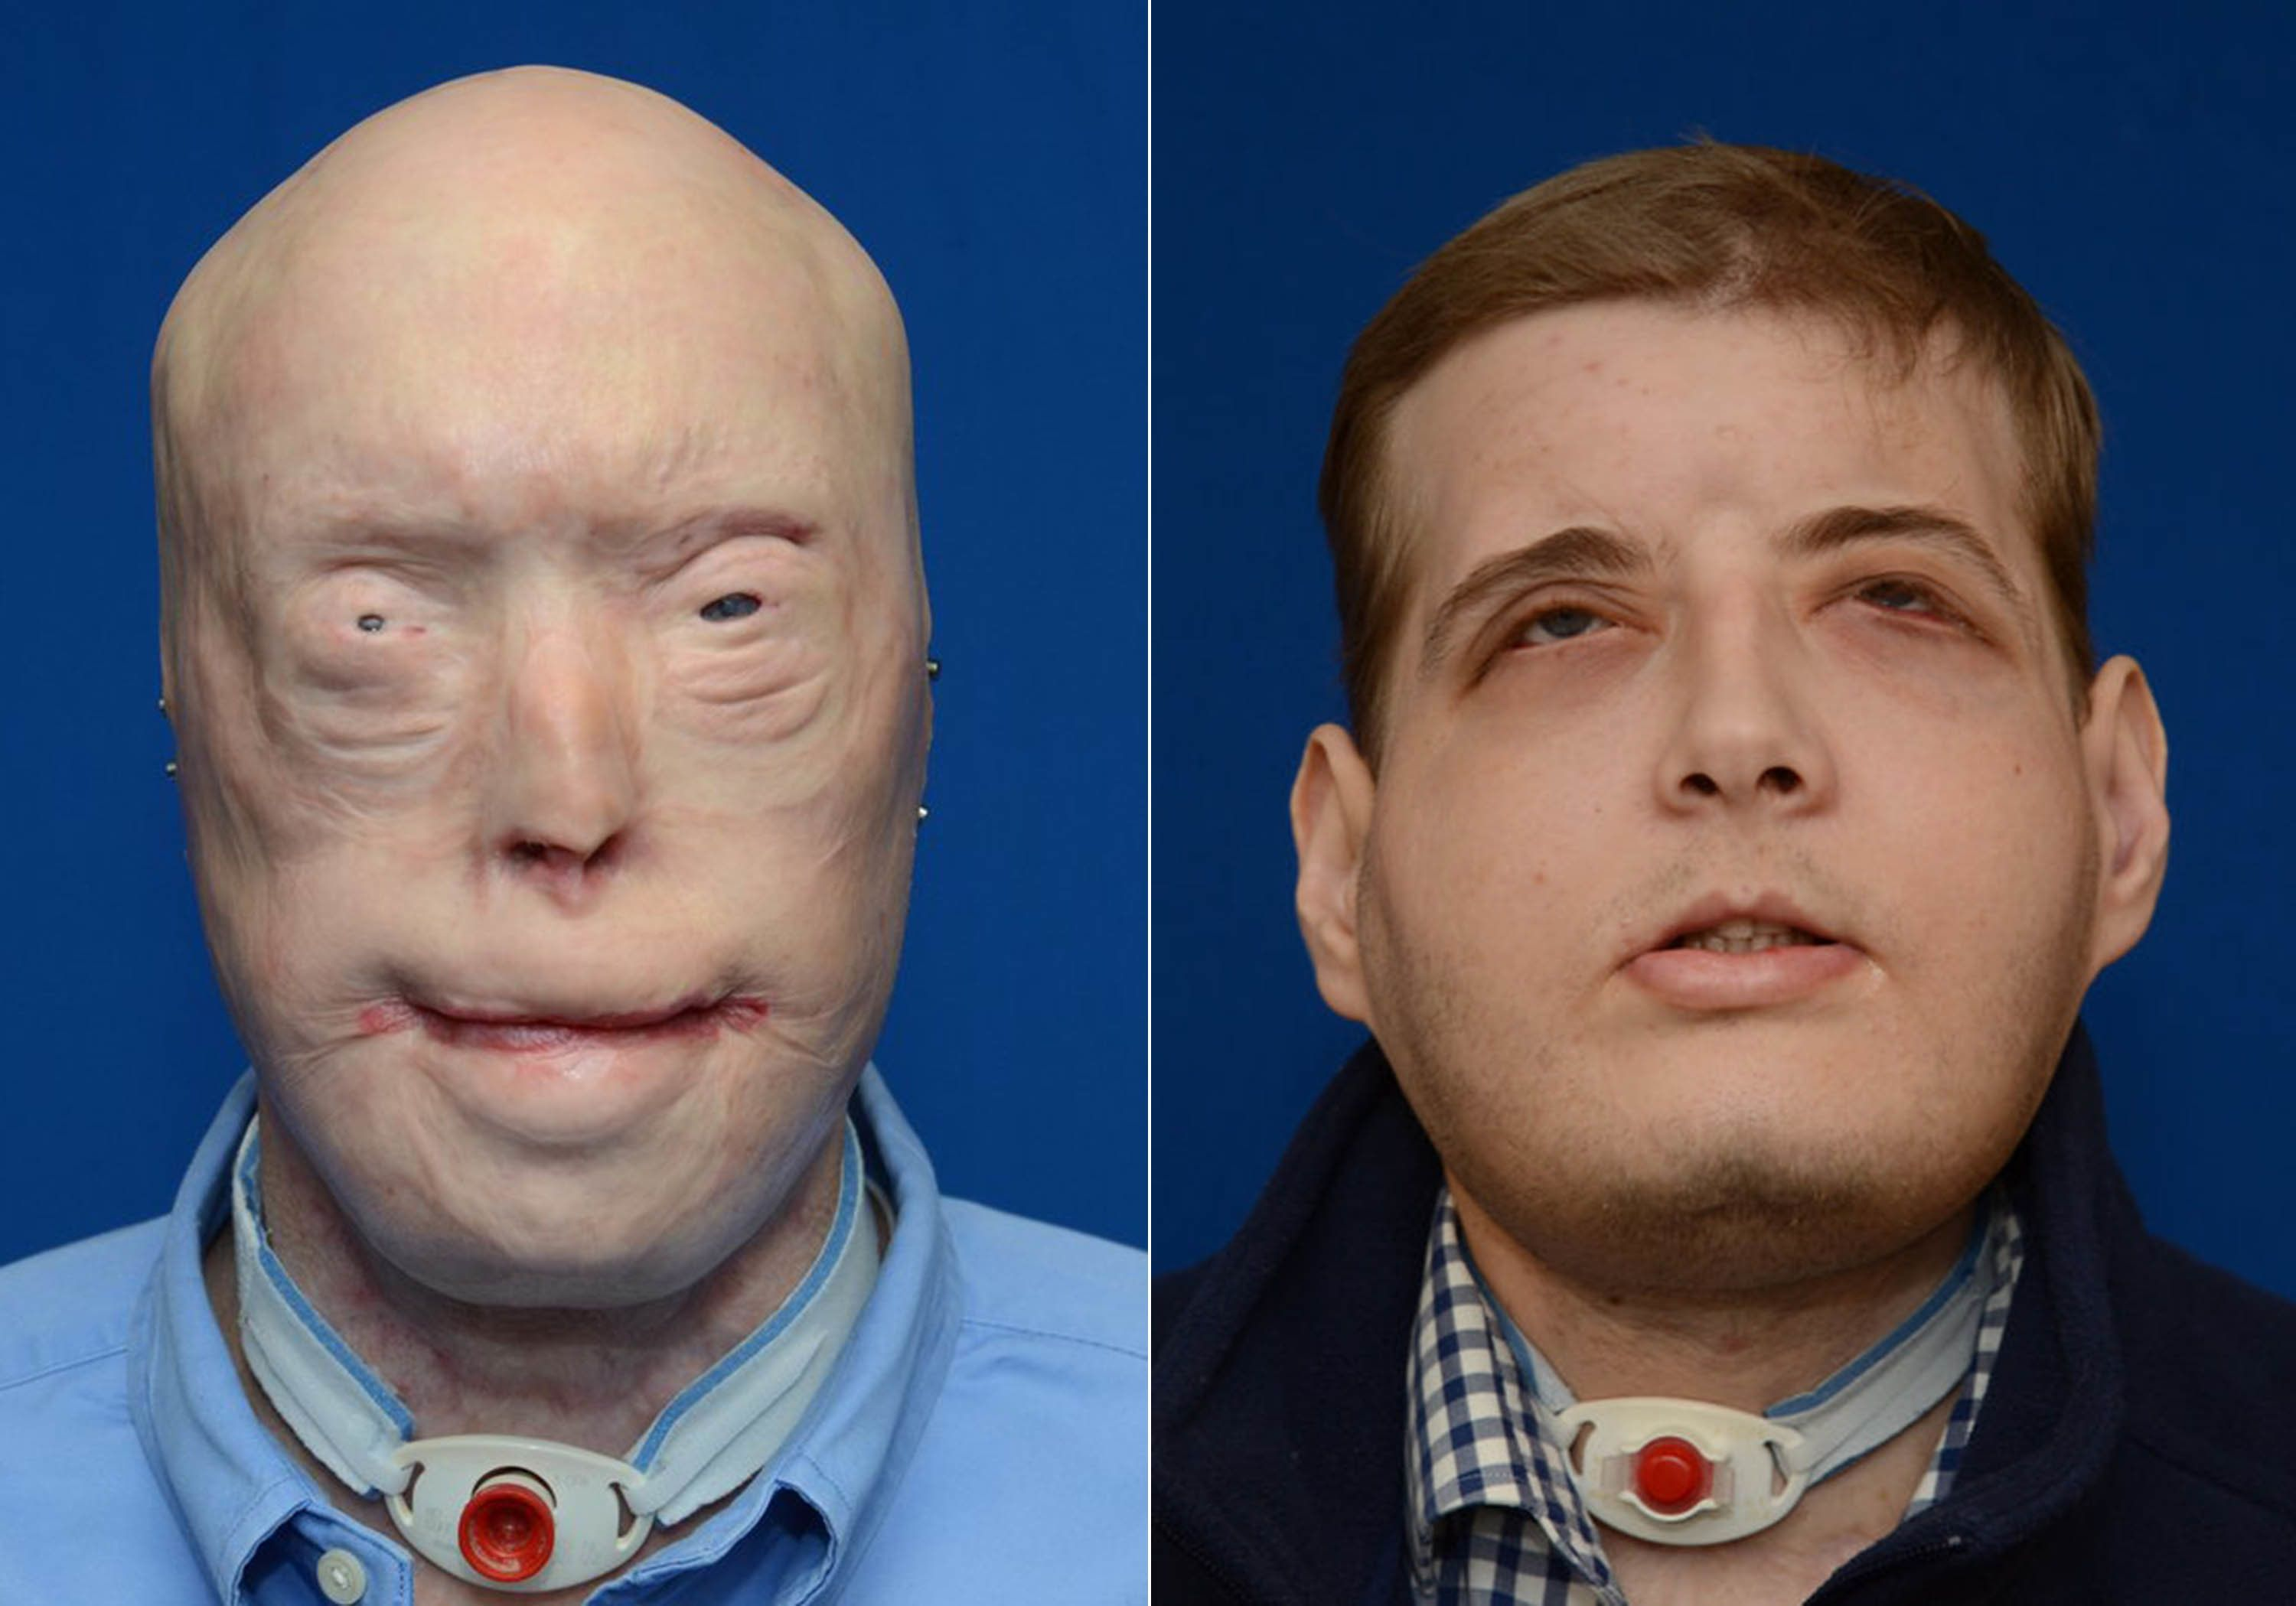 Patrick Hardison prior to his face transplant surgery (left) and in February 2016, about six months after surgery.